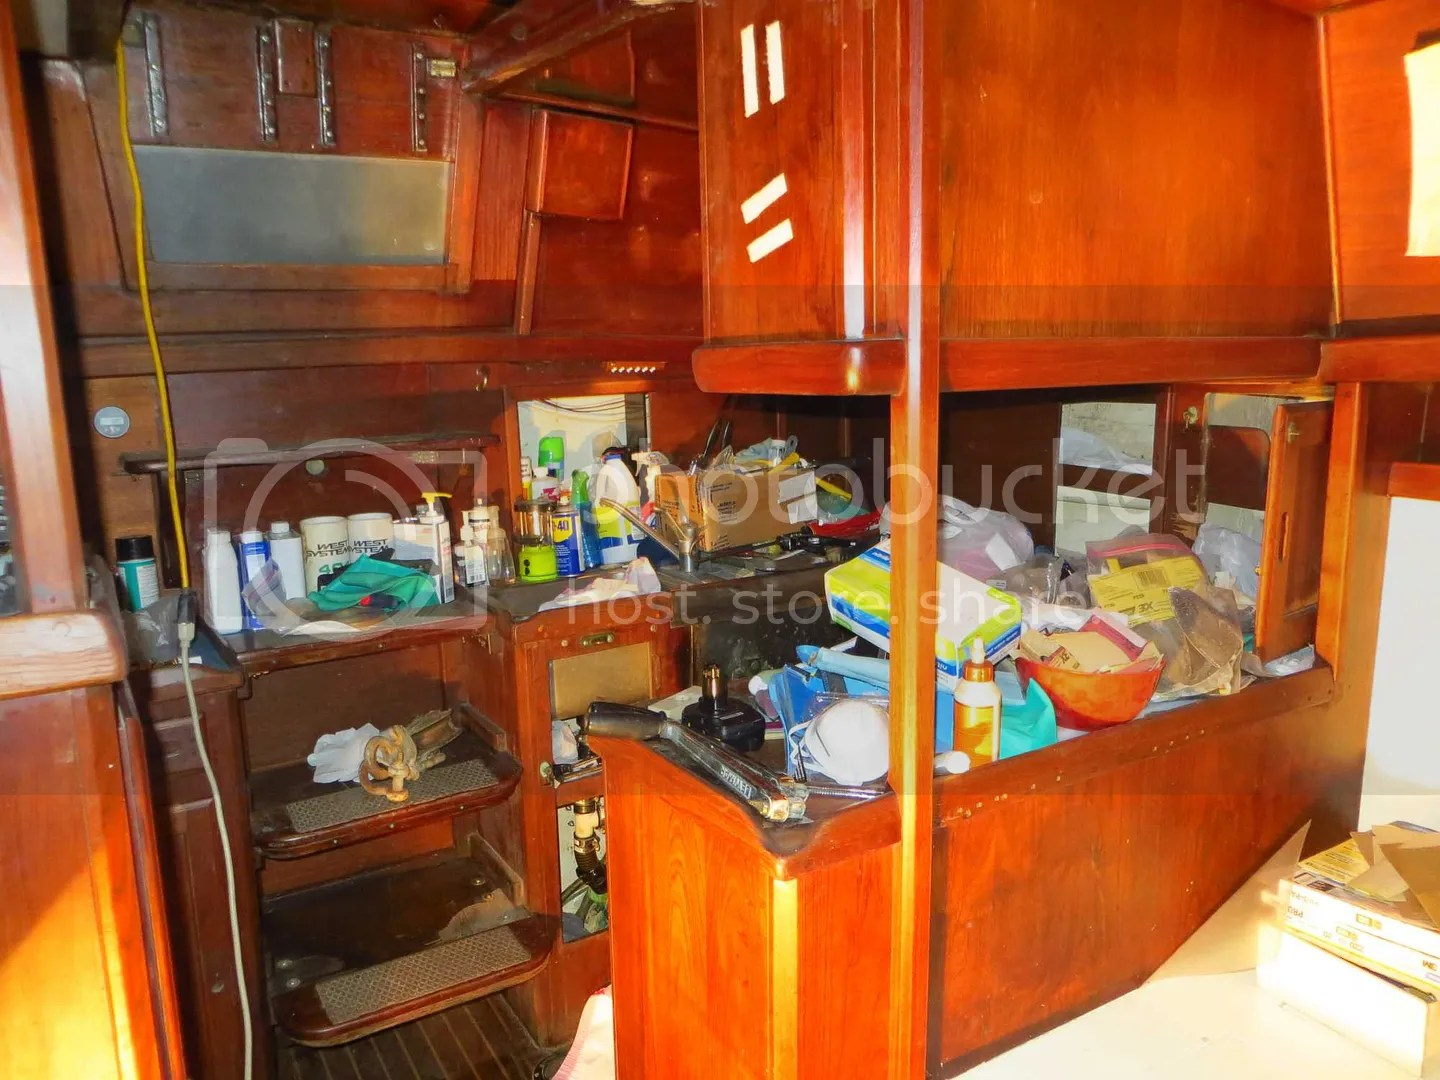 Mess in the galley